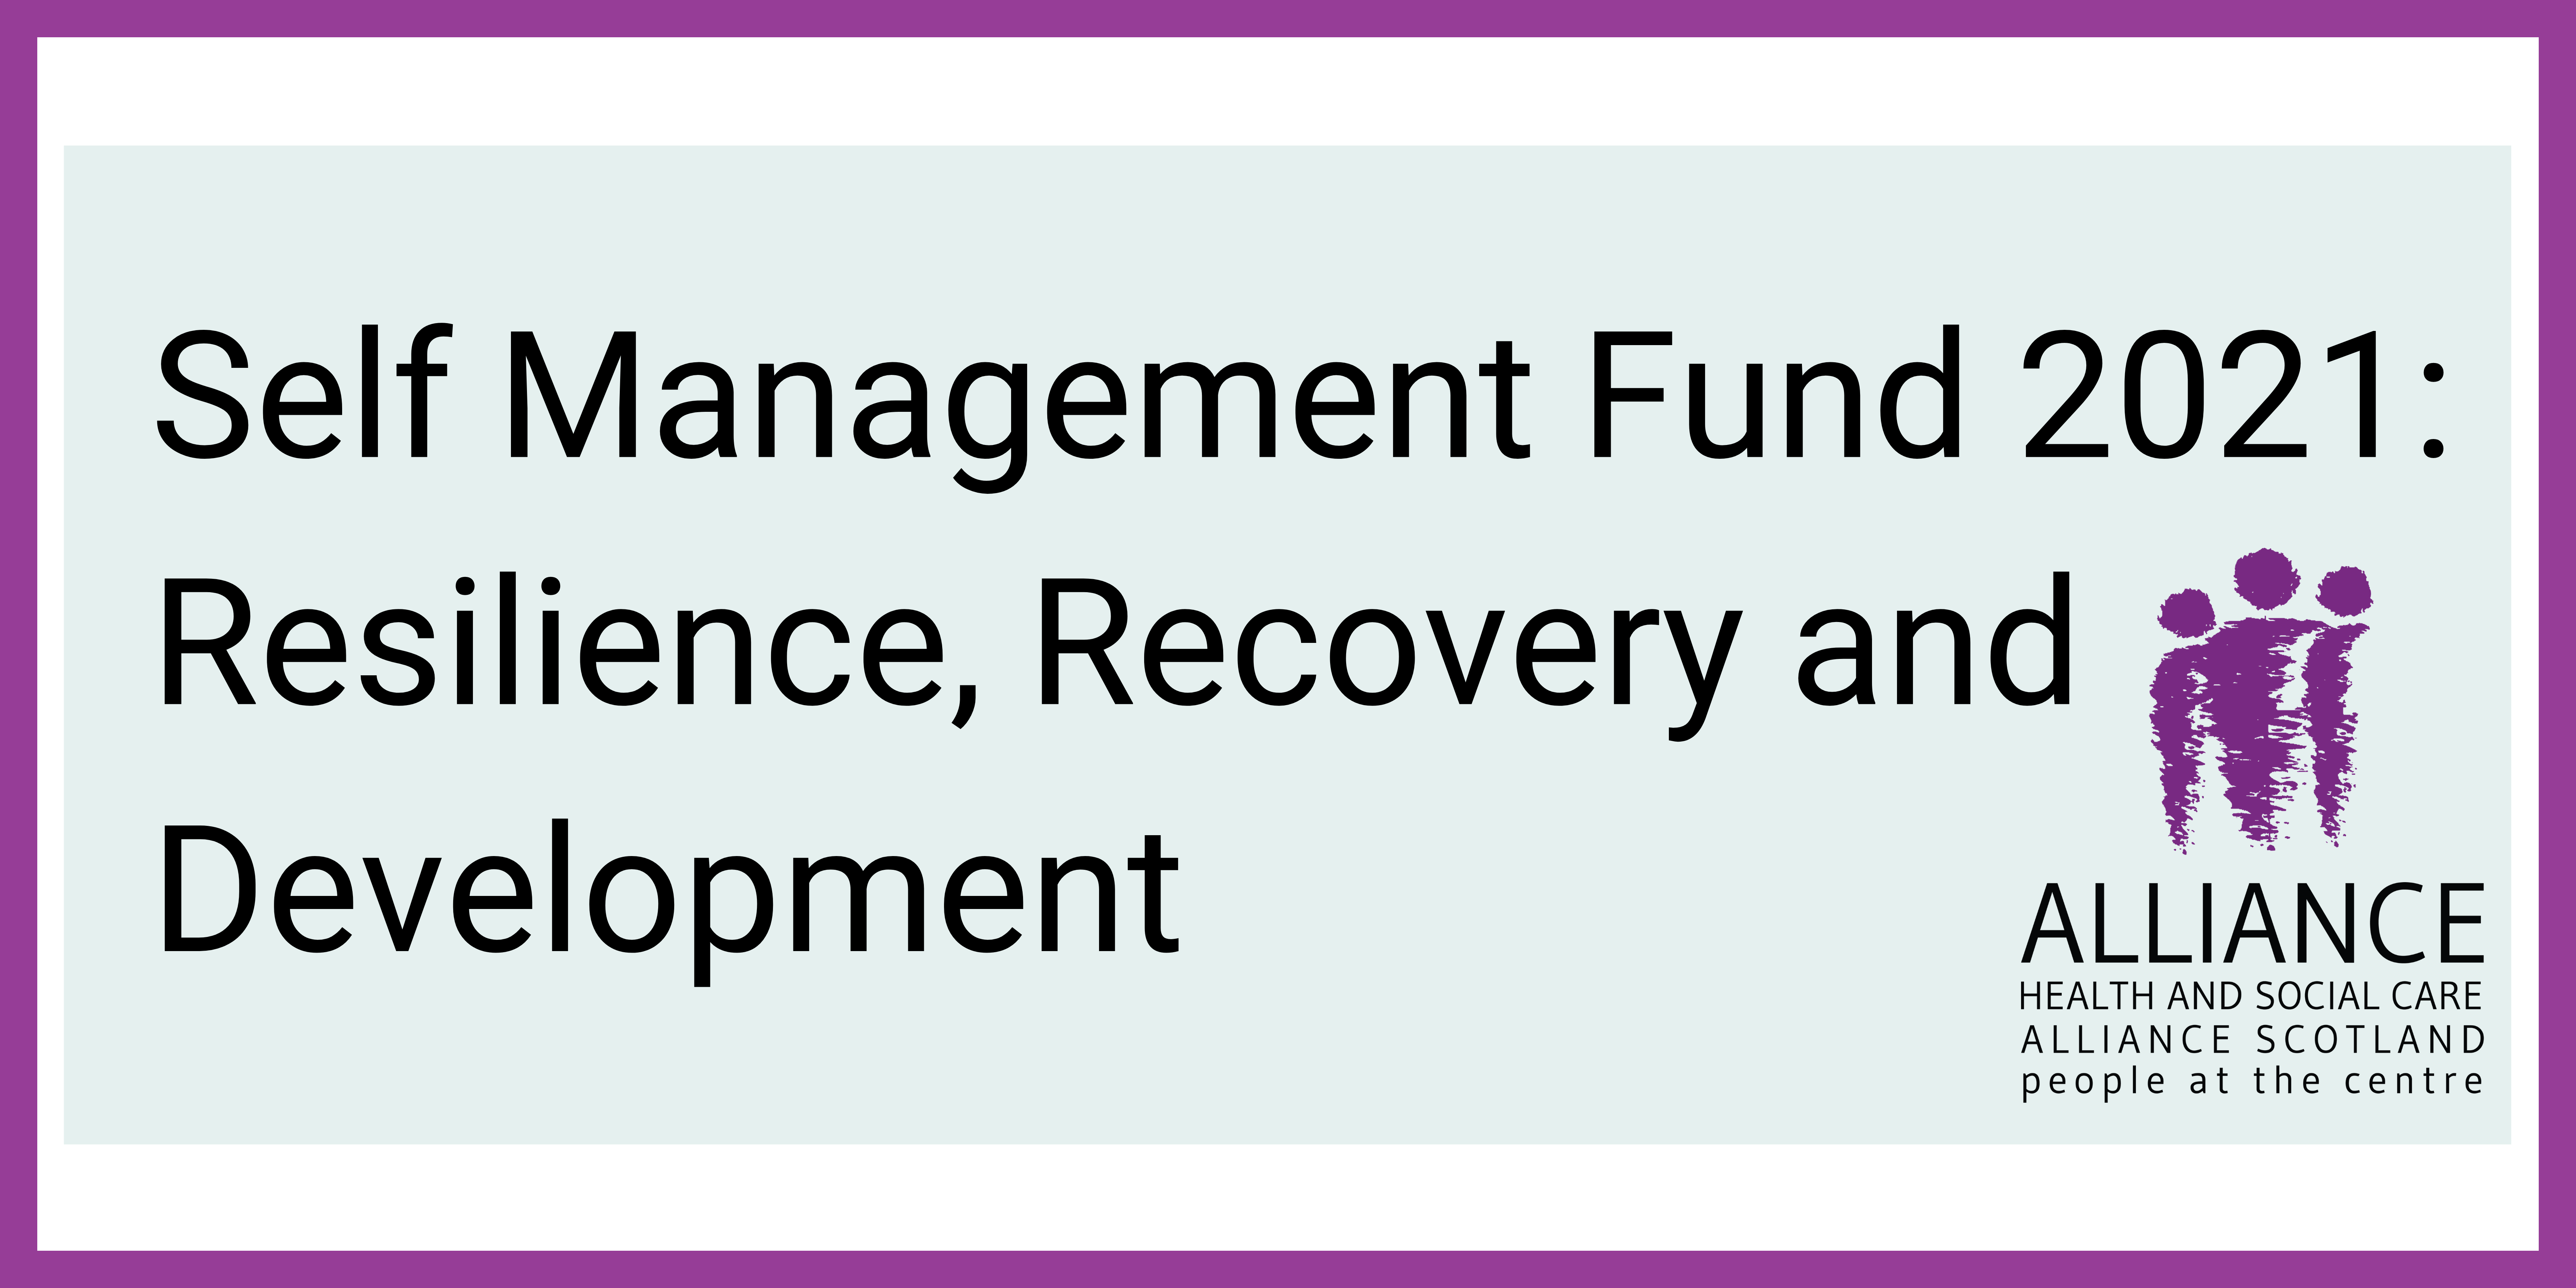 Self Management Fund 2021: Resilience, Recovery and Development